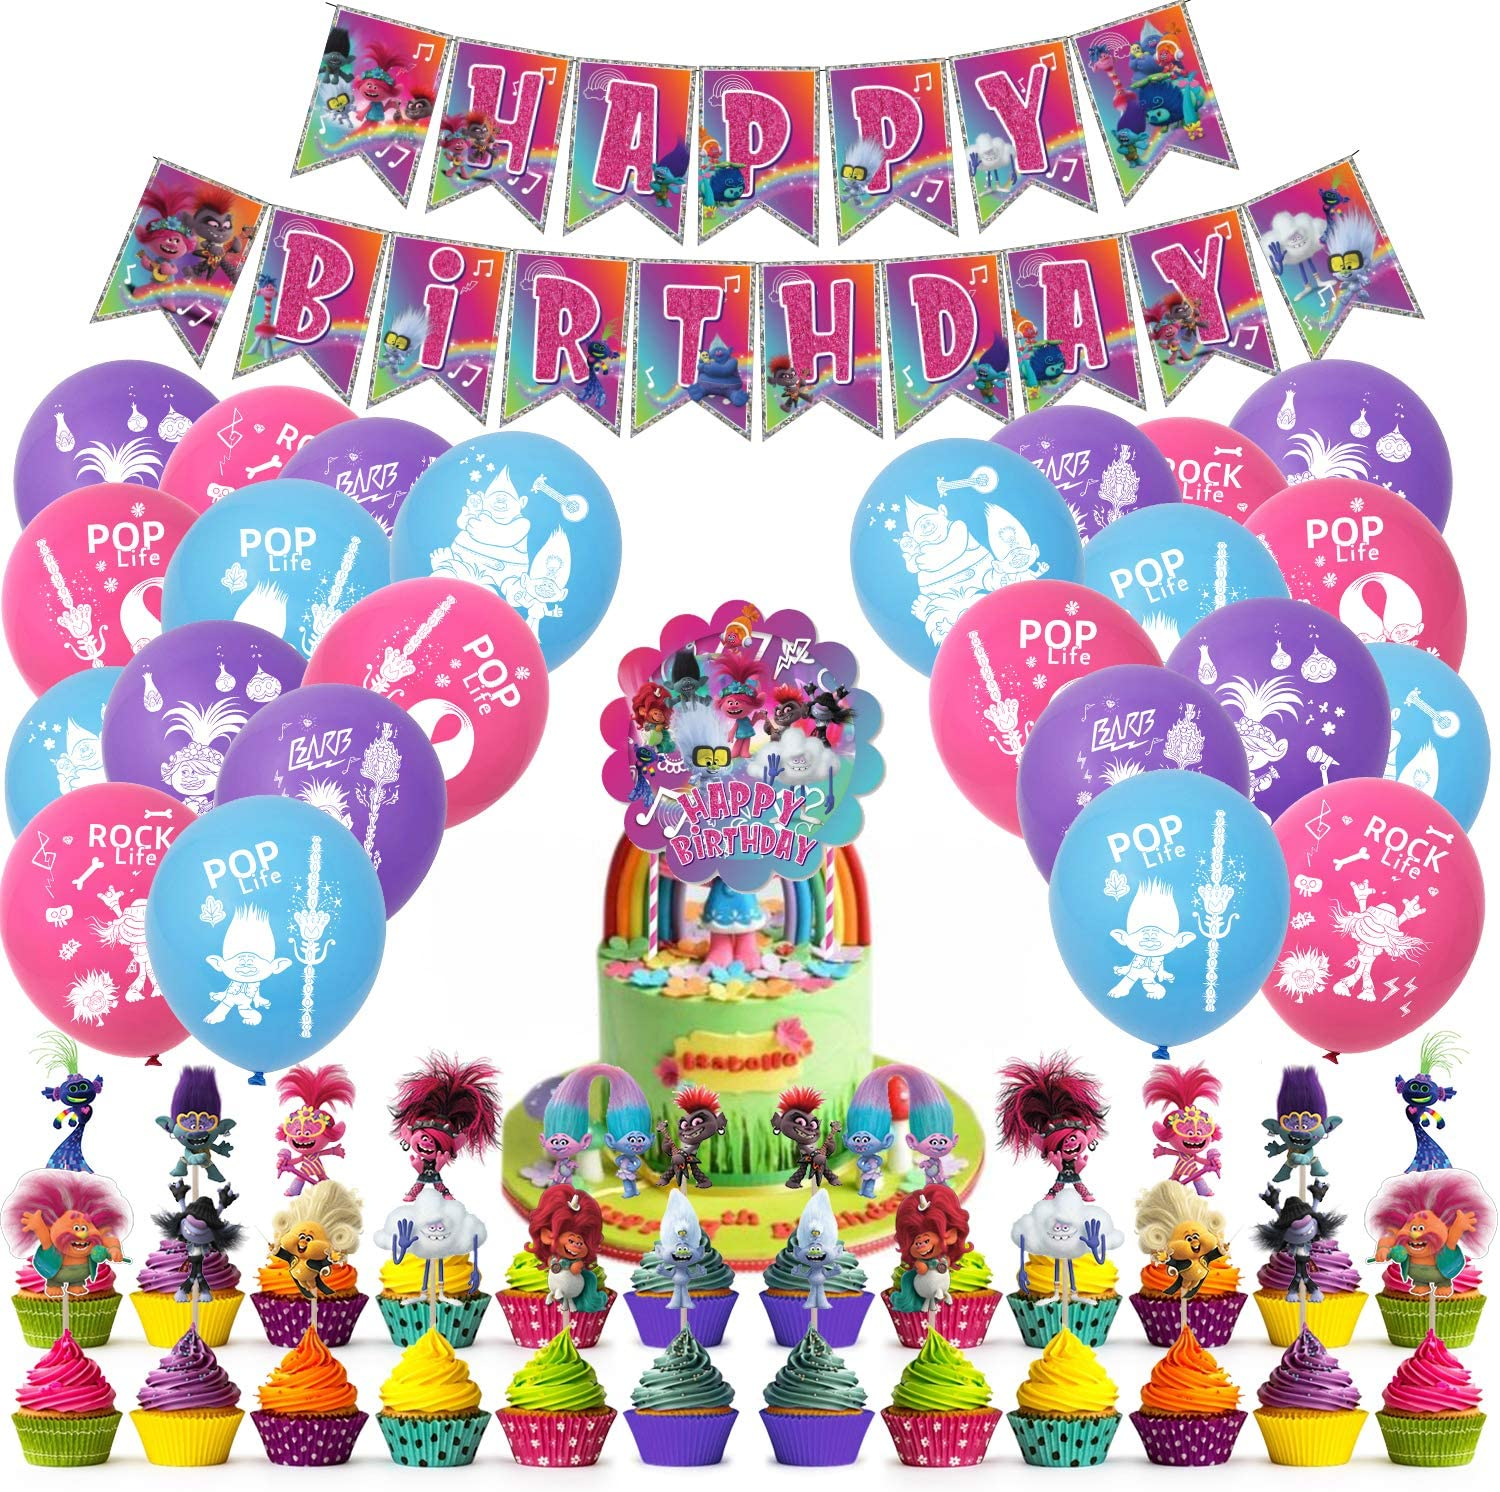 Nelton Birthday Party Supplies For Trolls World Tour Includes Banner - Cake Topper - 24 Cupcake Toppers - 22 Balloons